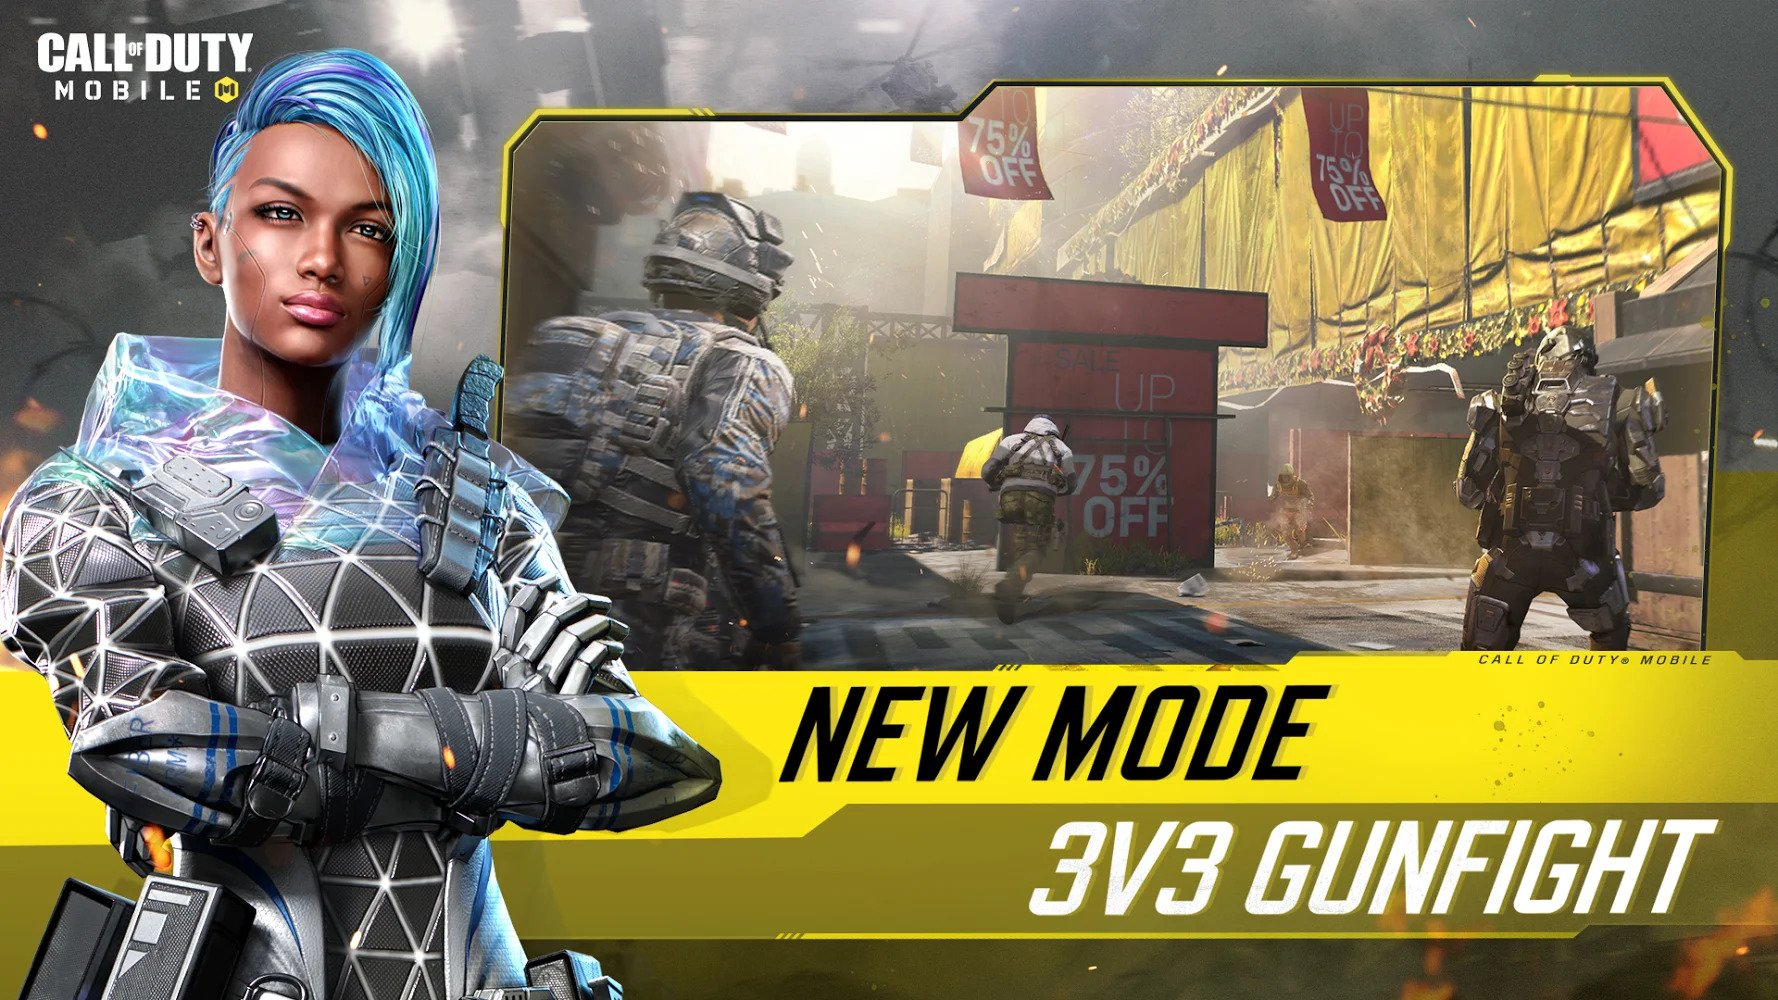 Call Of Duty Mobile Mod Apk Free Download 2